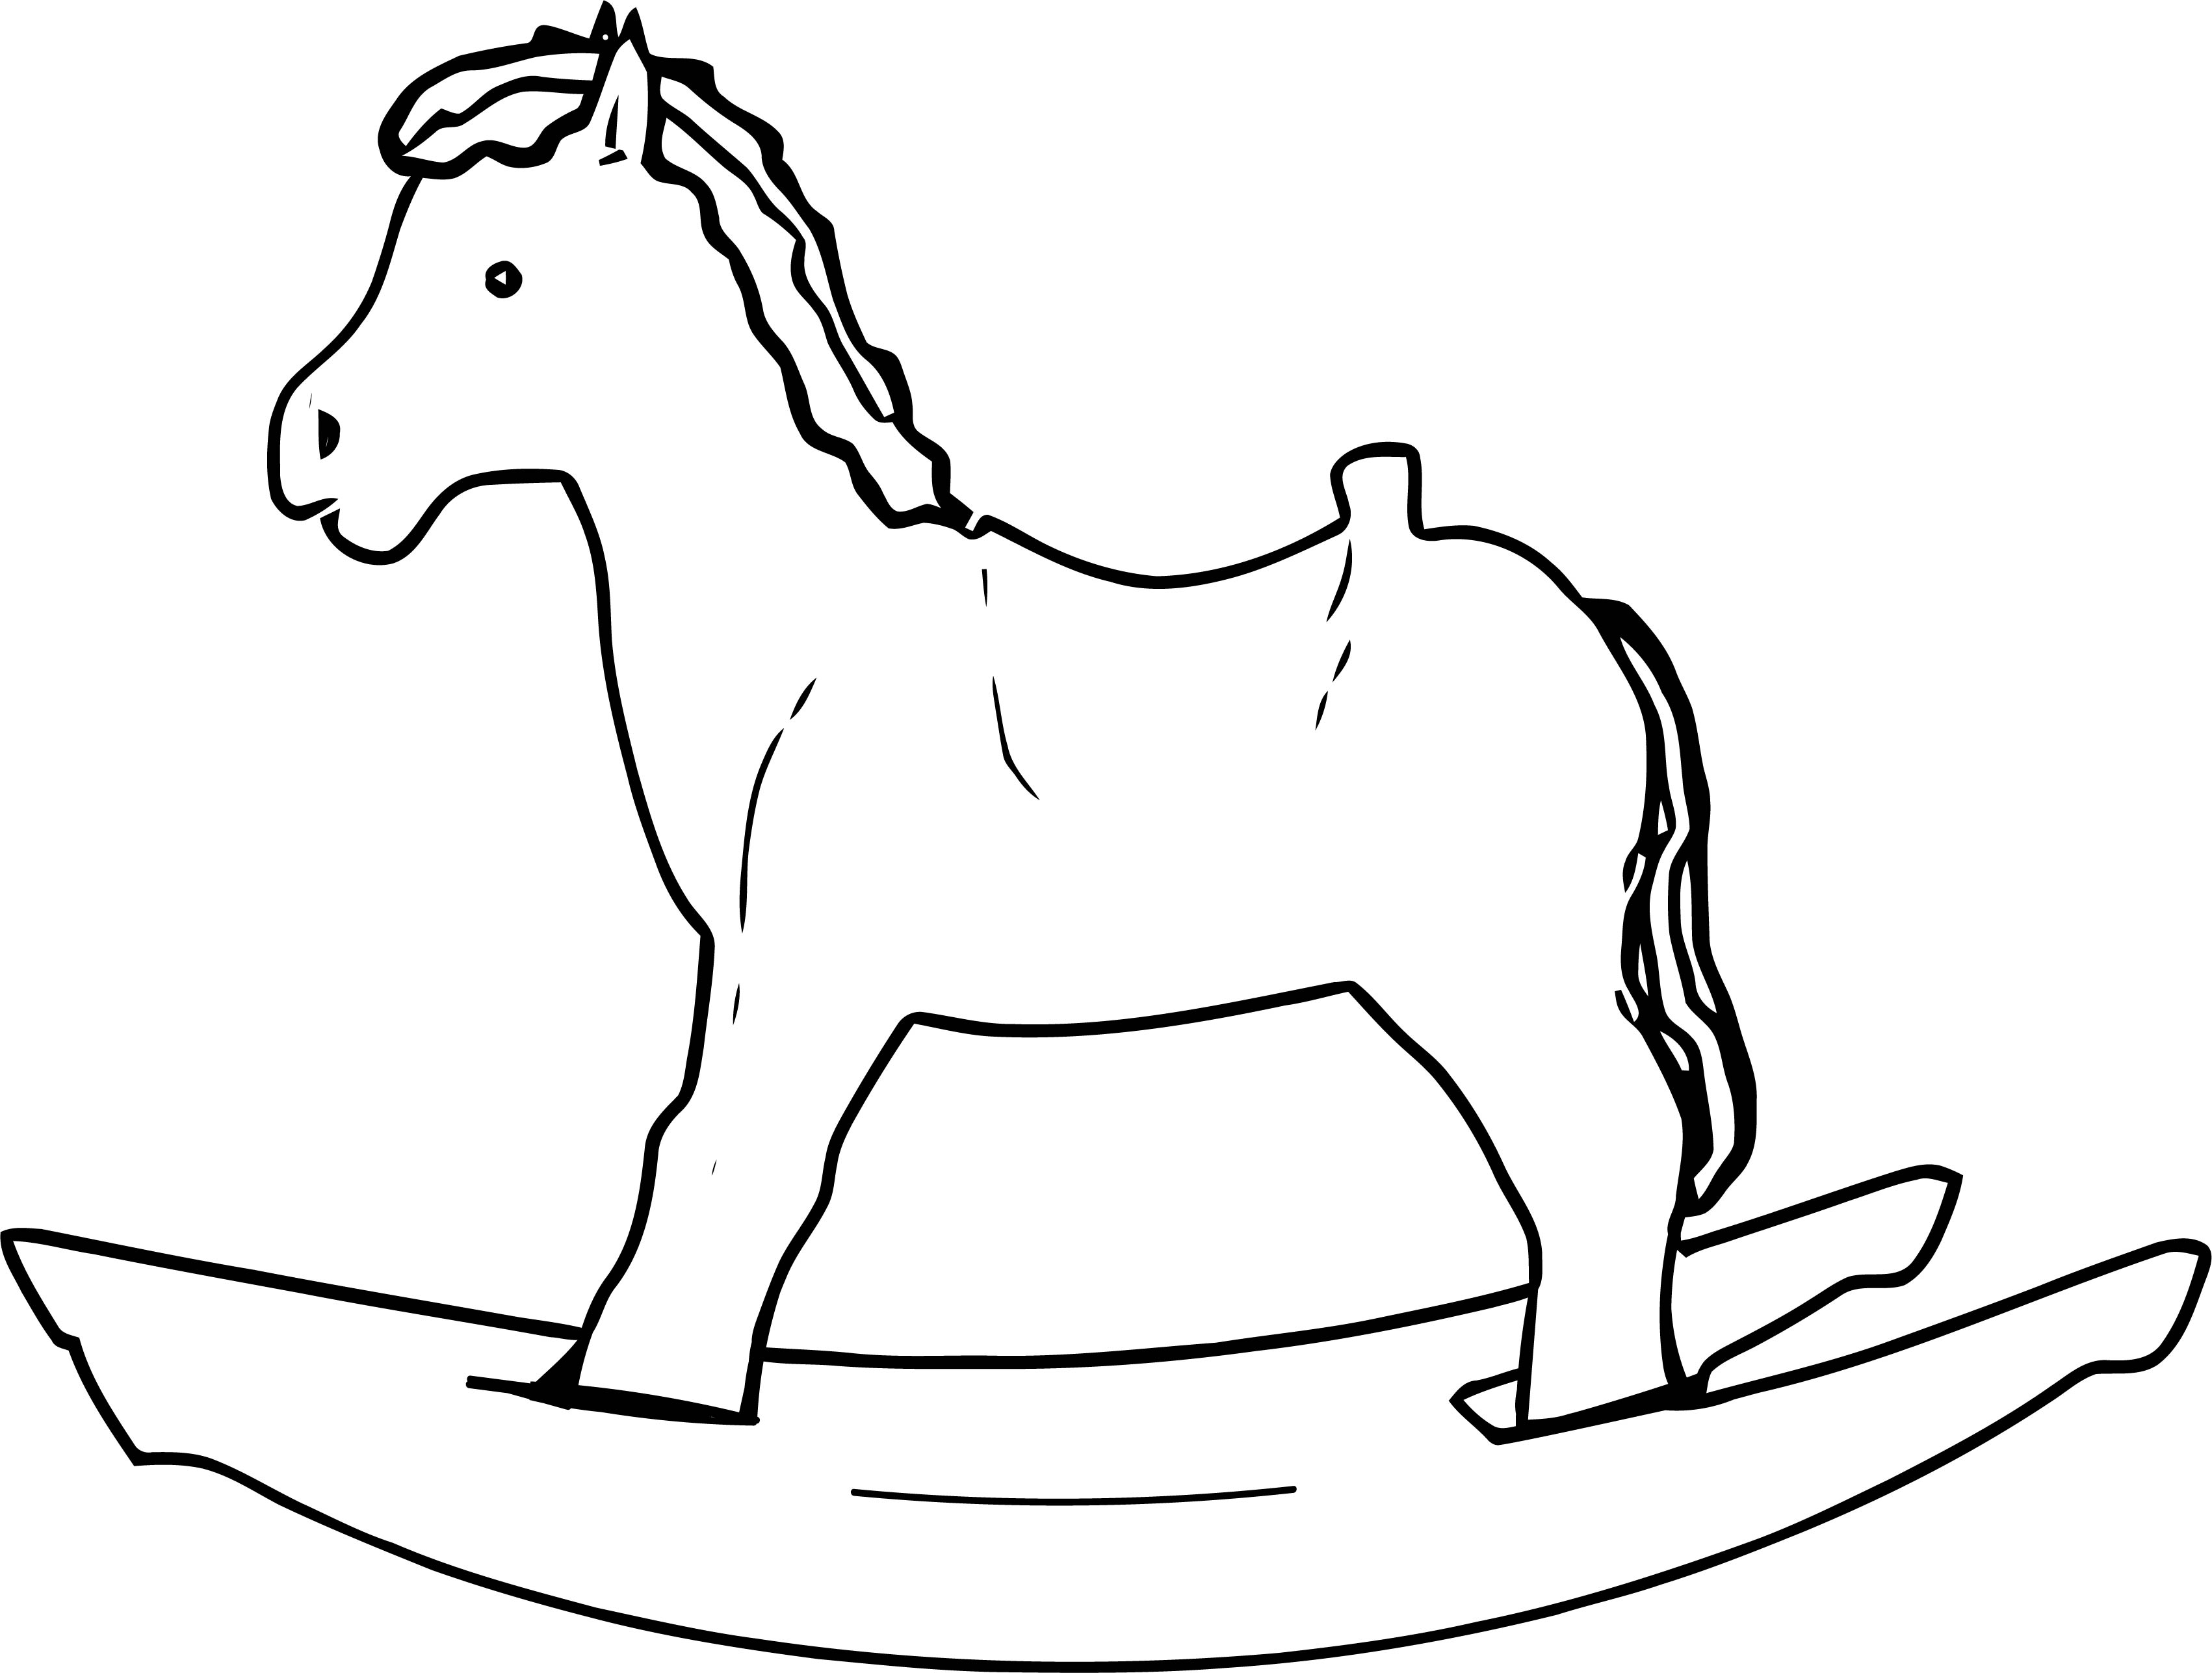 Horse Coloring Page Wecoloringpage 113